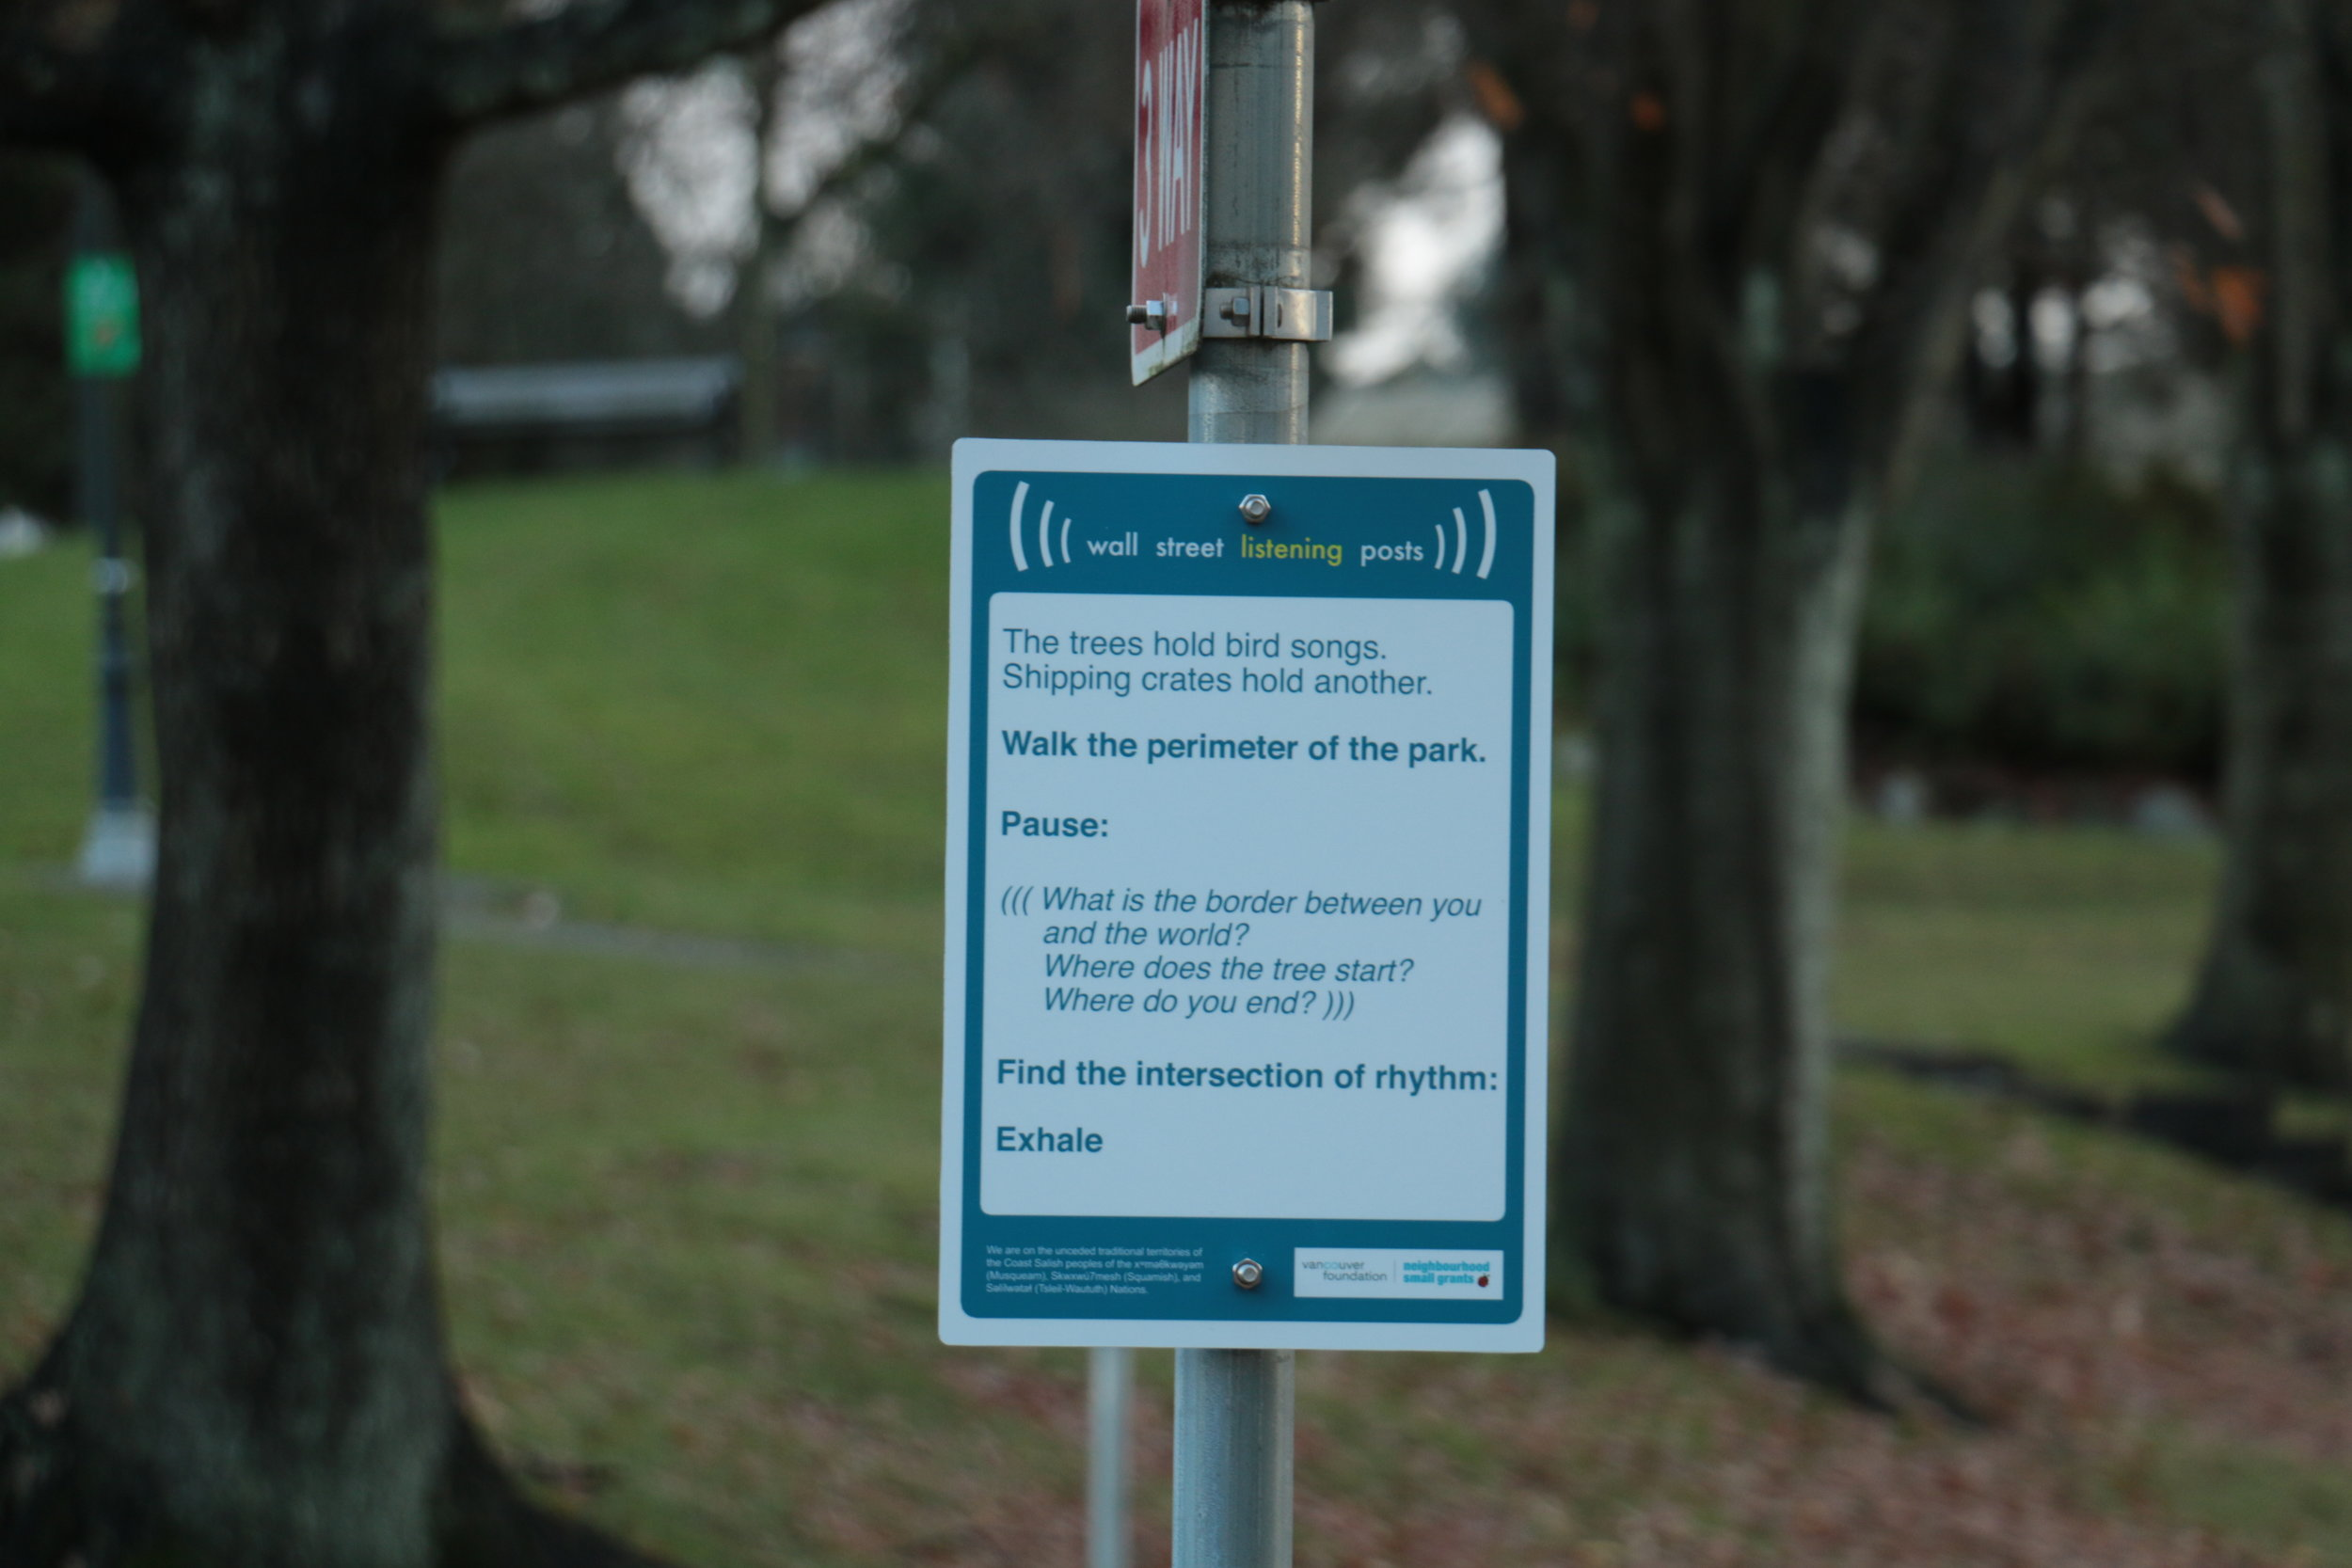 Wall Street Listening Post installed at Wall and Penticton. Photo: Krystle Coughlin.